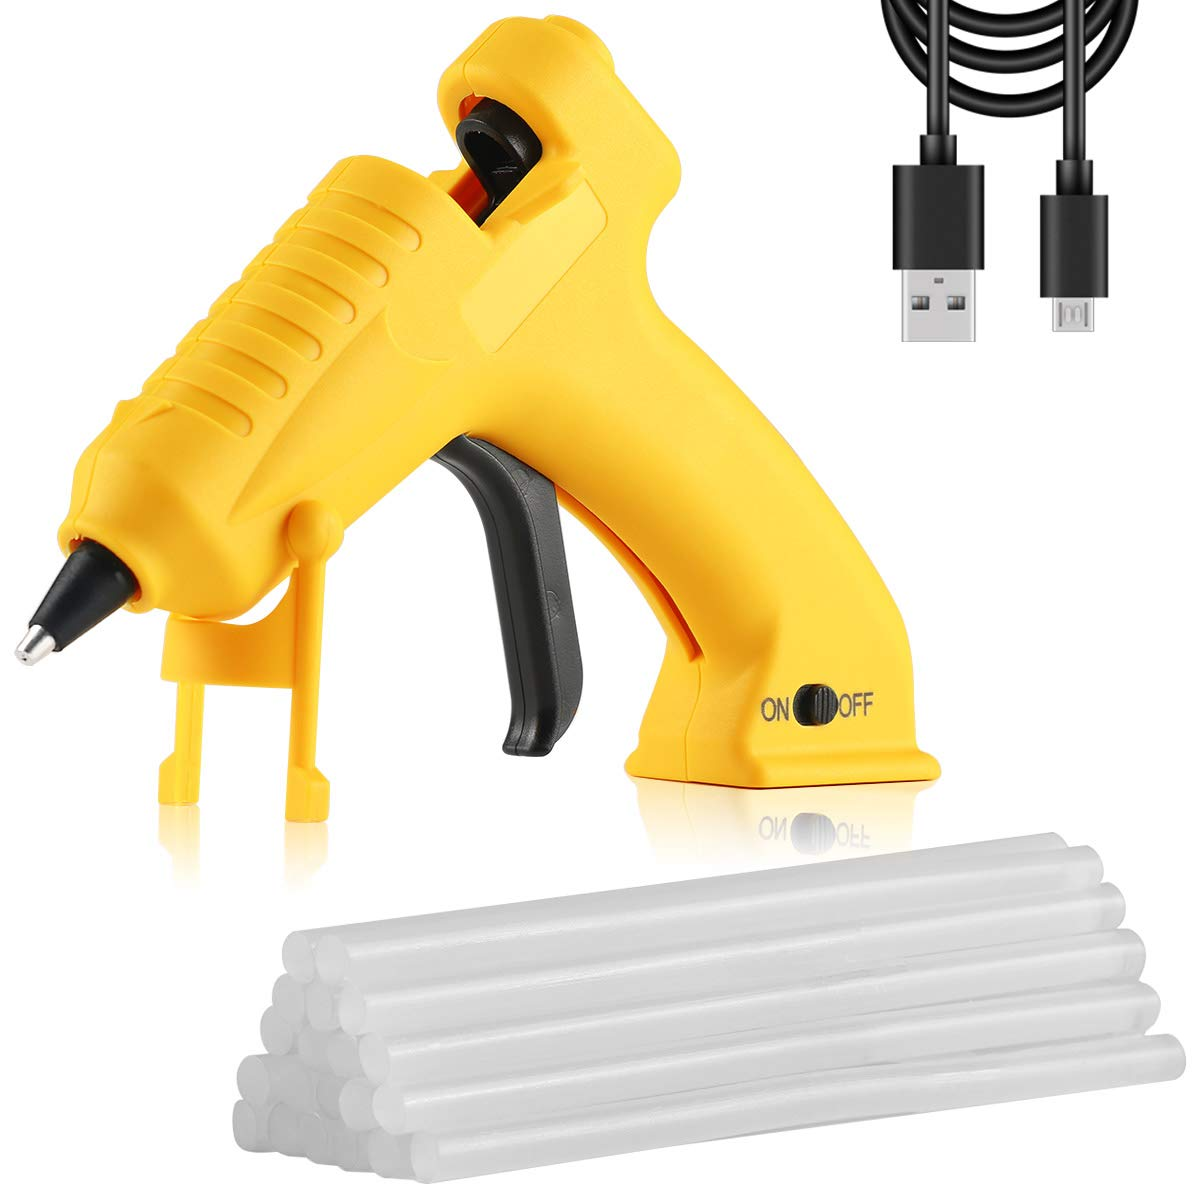 Hot Glue Gun Cordless with 20pcs Glue Sticks(7mm X 150mm),Recharge Portable USB Mini Glue Gun Kit for DIY,Craft, Arts & Home and Quick Repairs AONOKOY